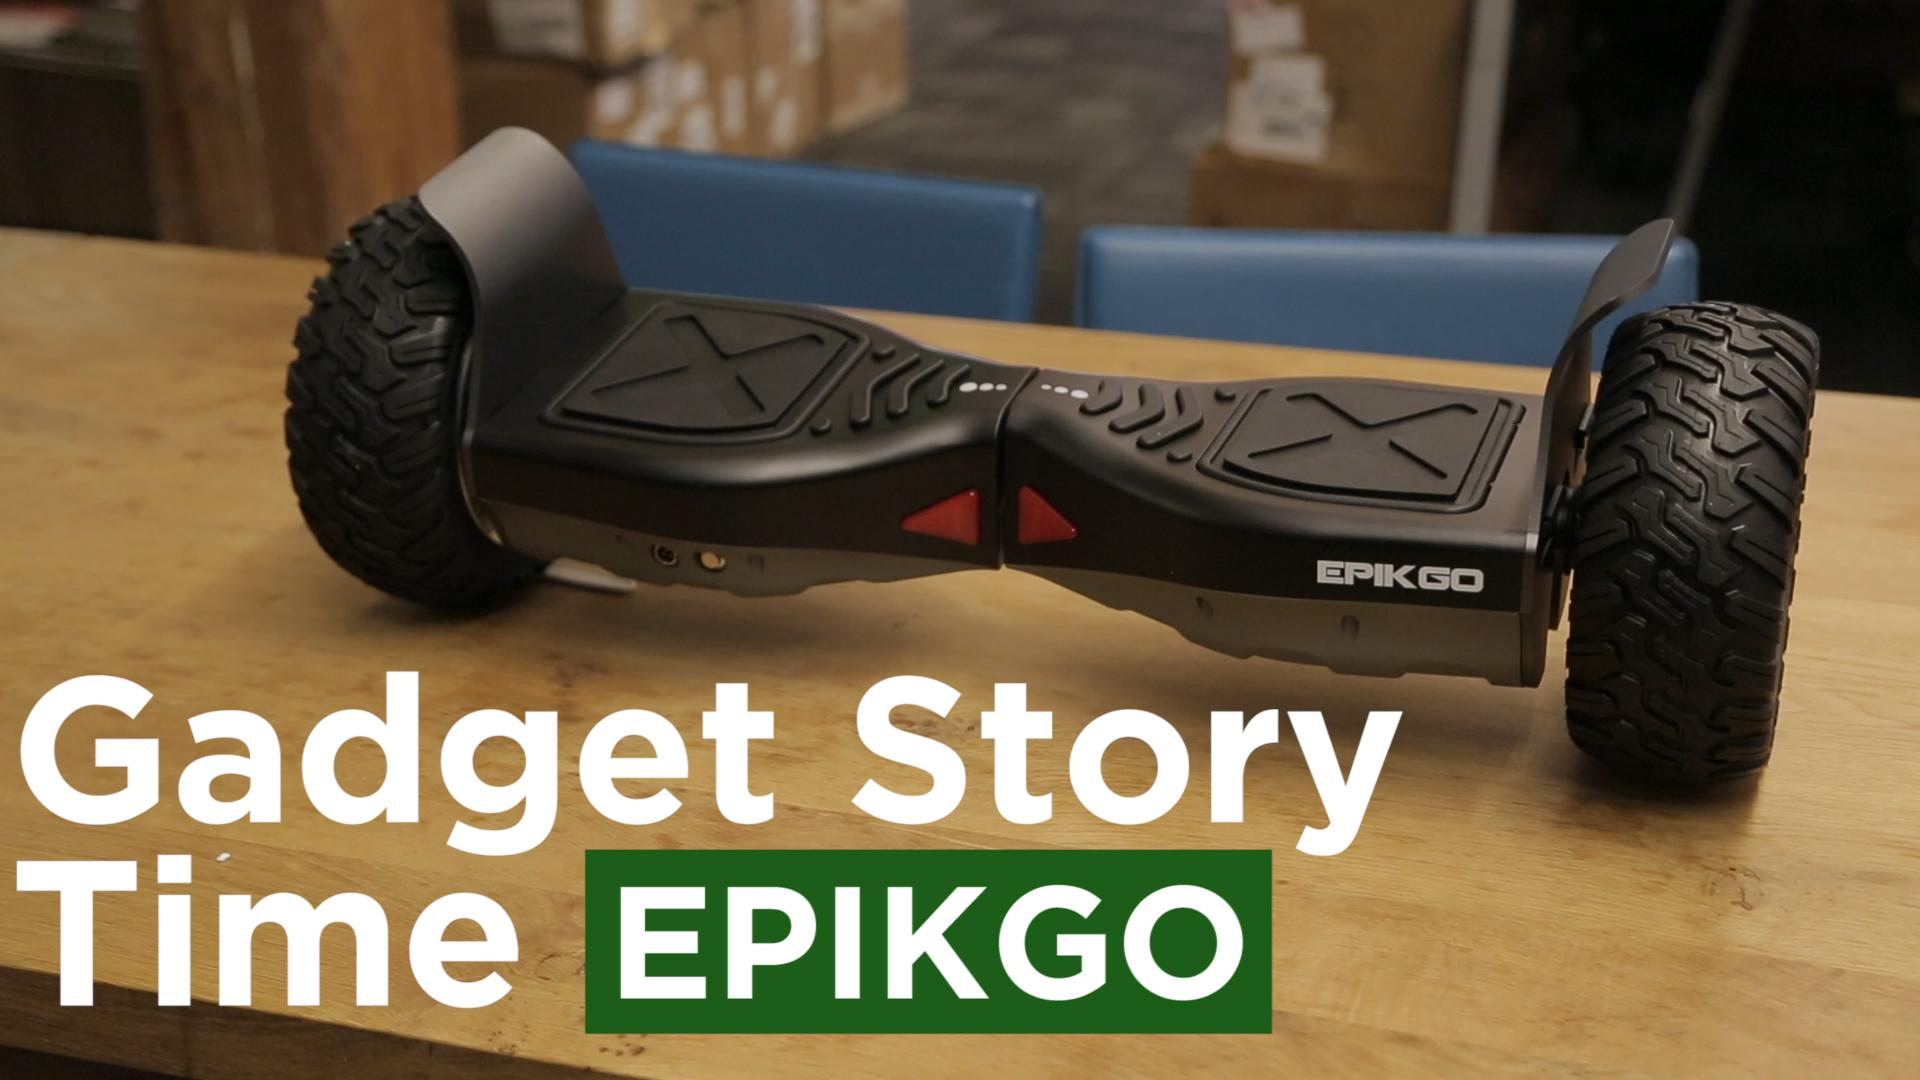 Gadget Story Time with EPIKGO hoverboard